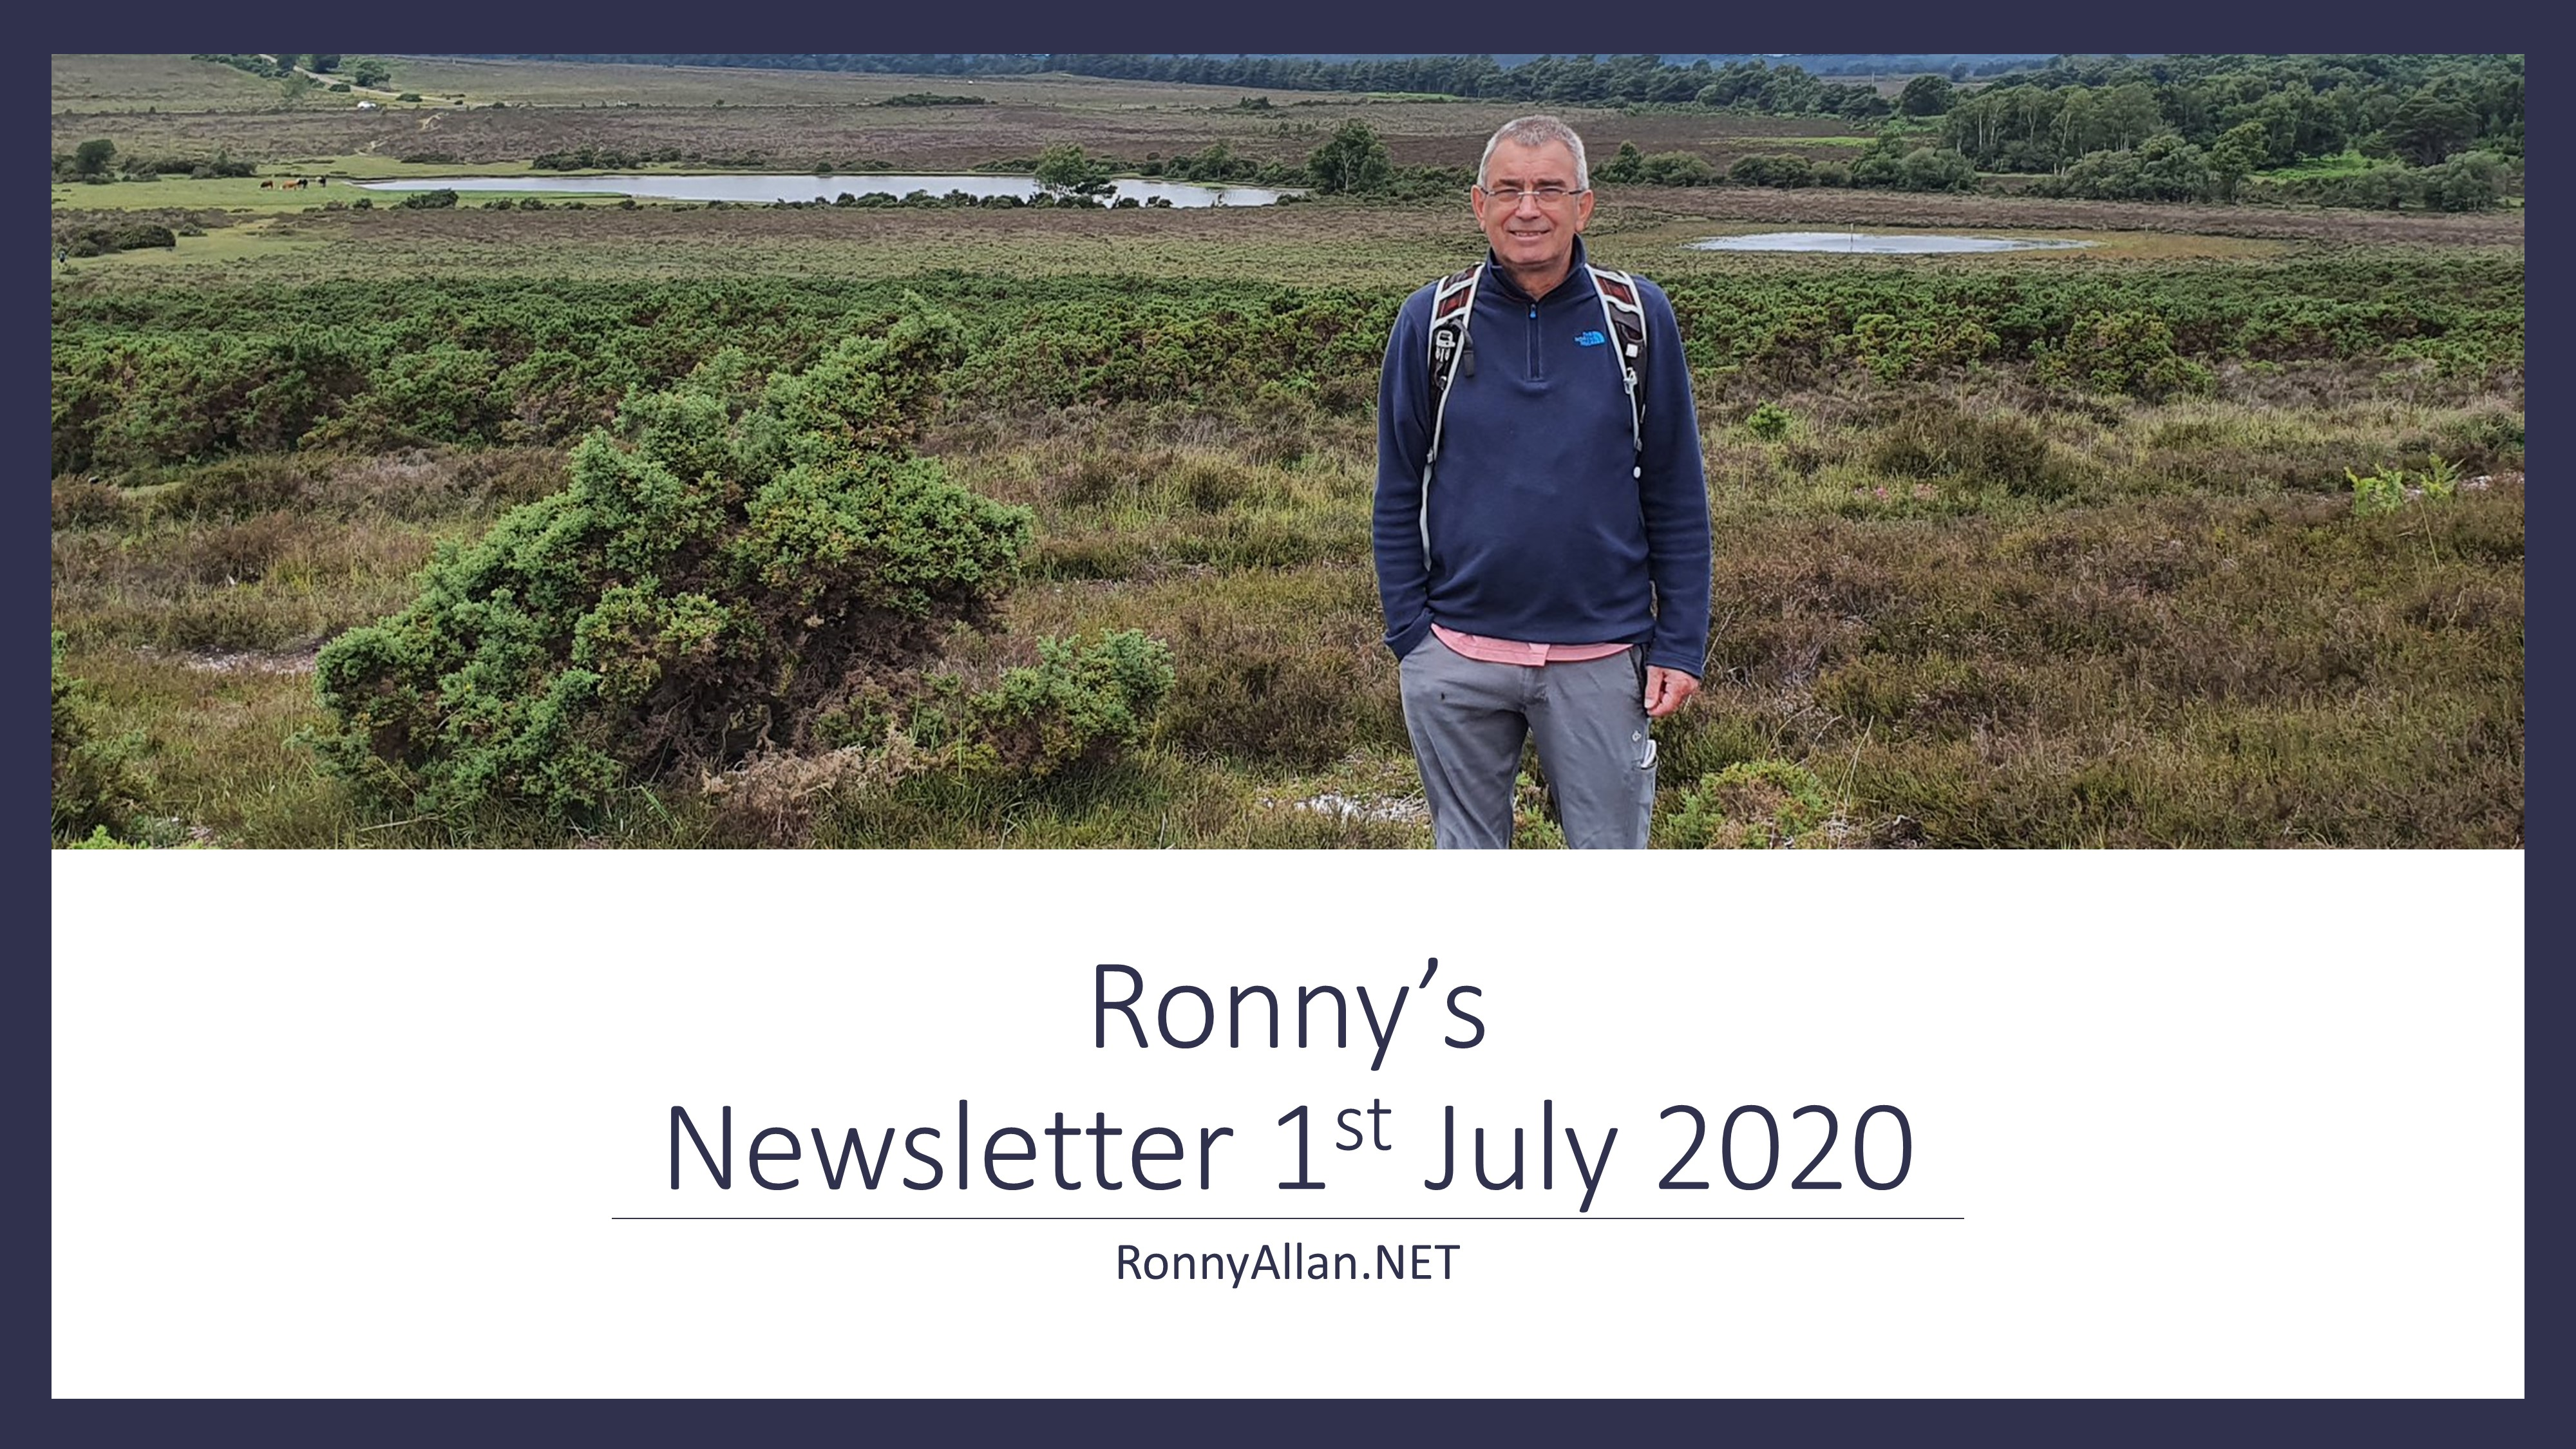 RonnyAllan.NET – Newsletter 1st July 2020